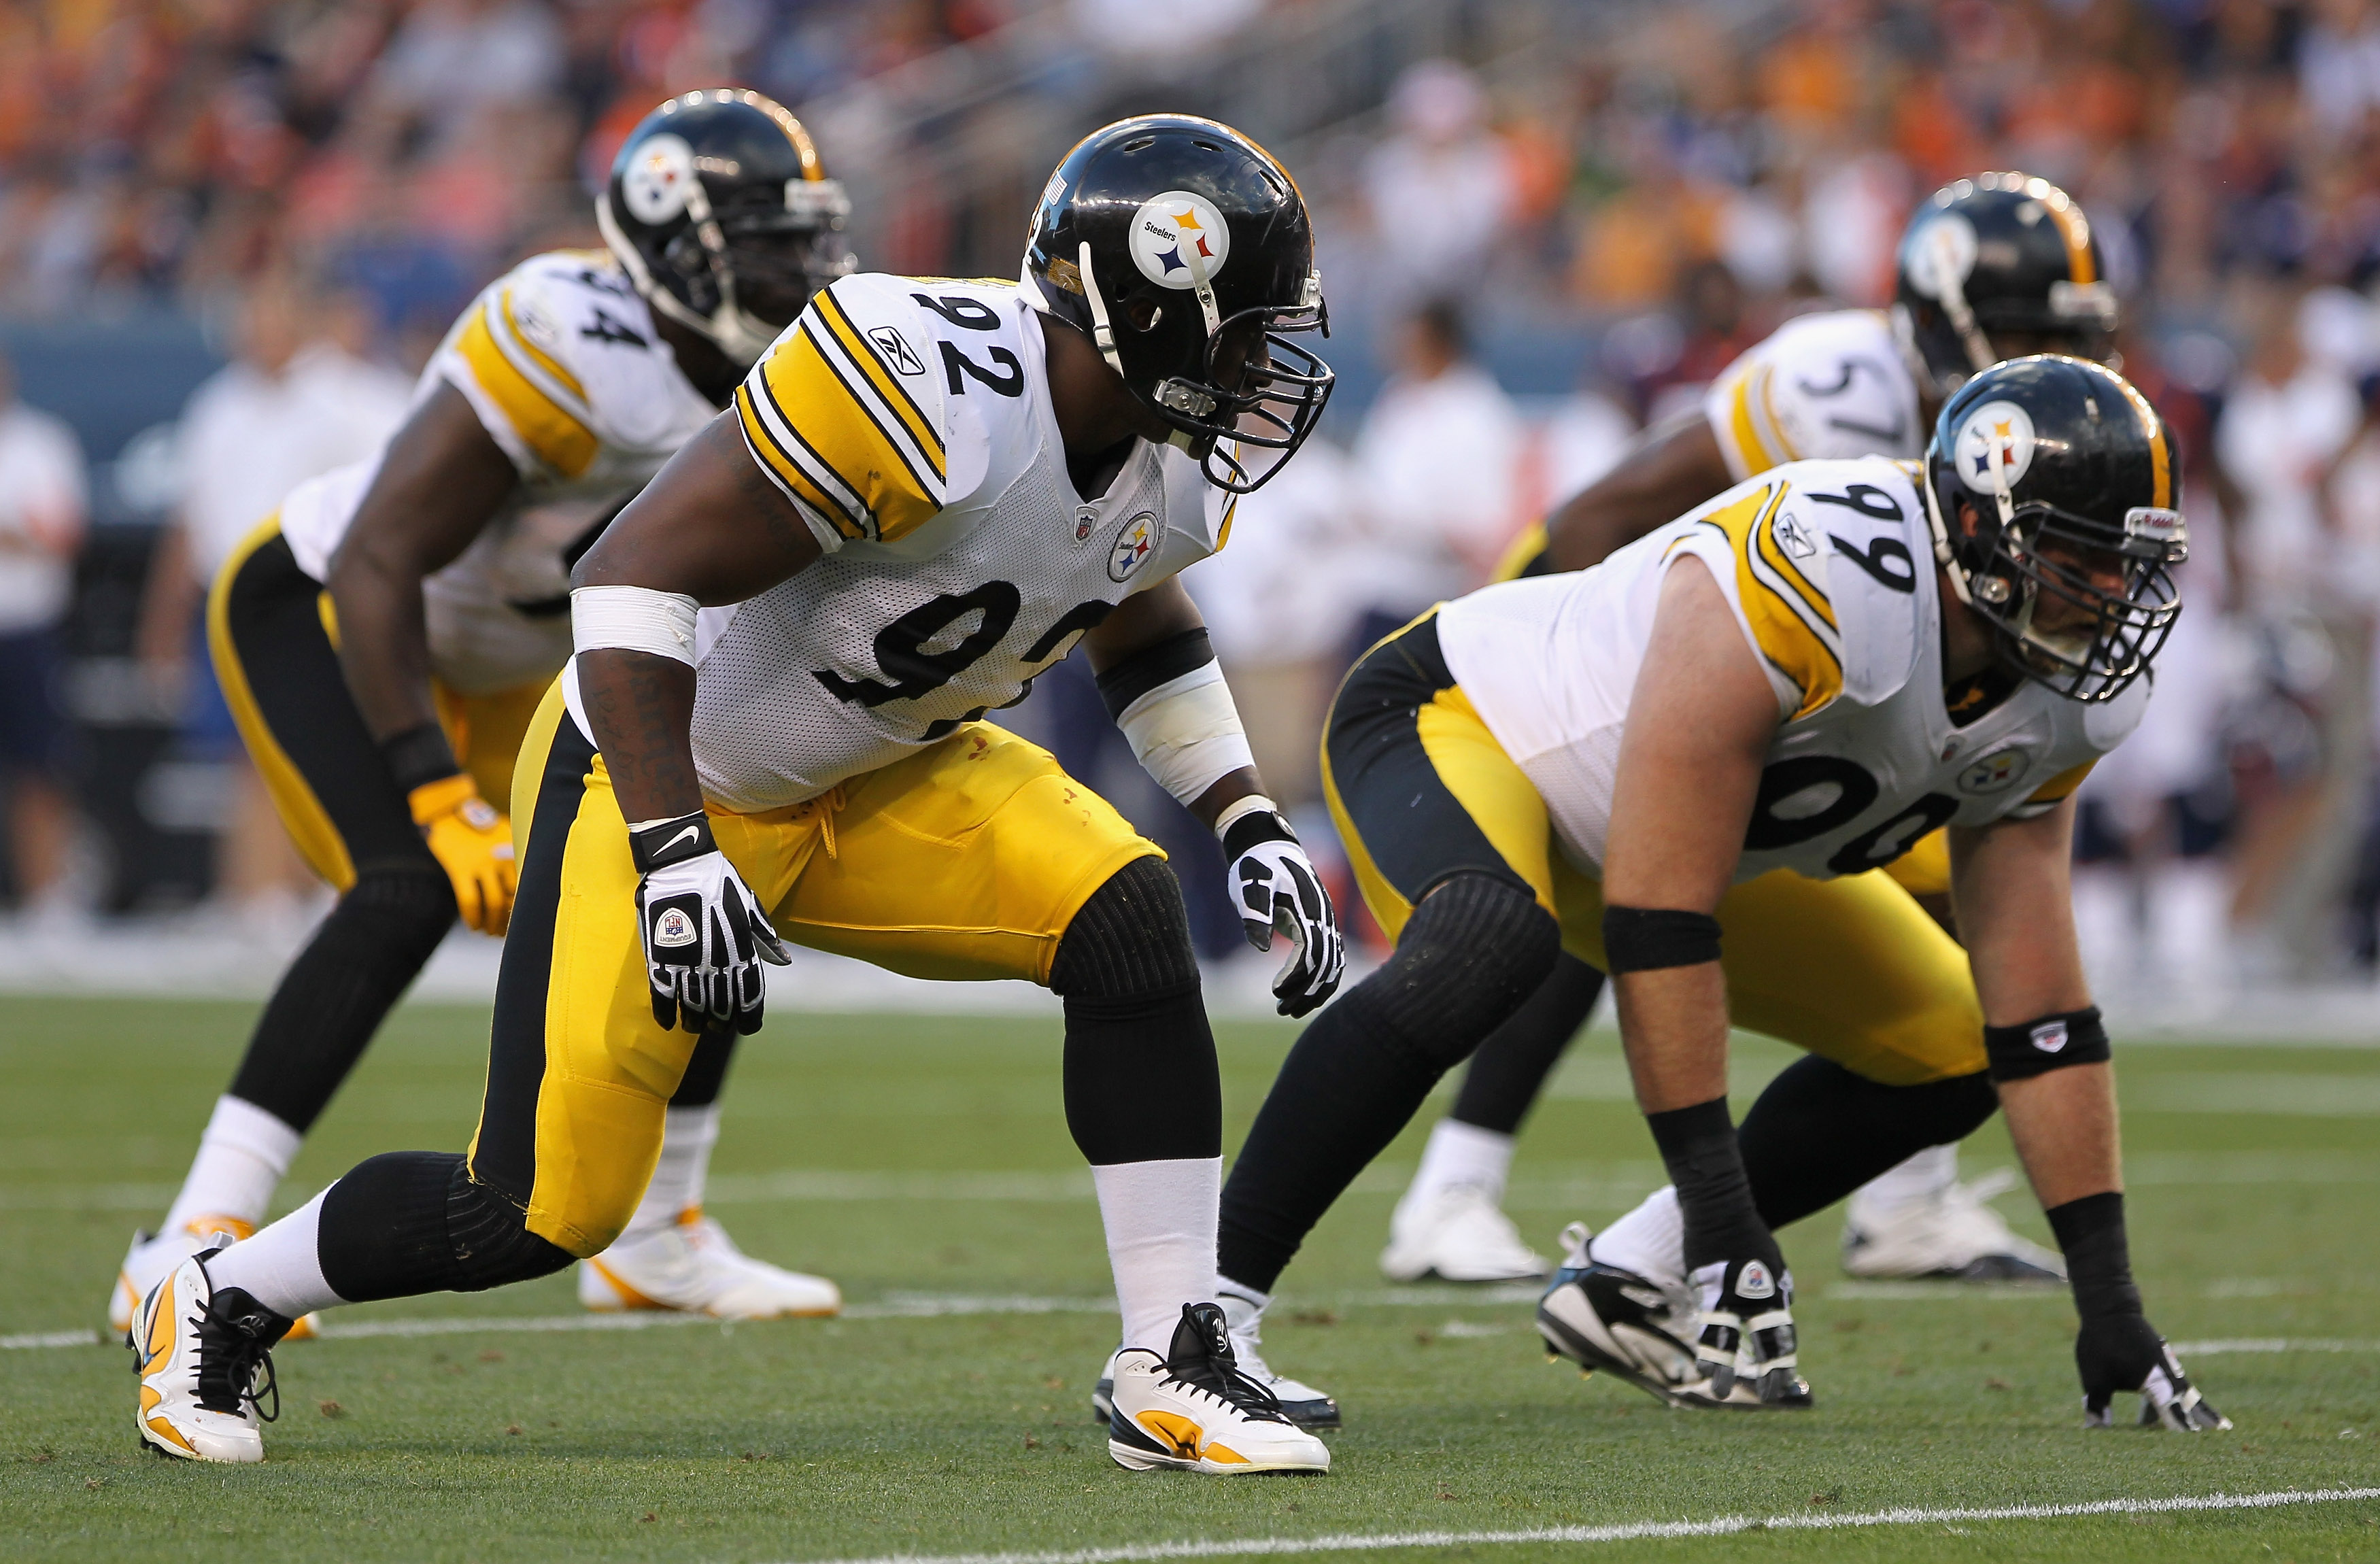 DENVER - AUGUST 29:  Linebacker James Harrison #92 and defensive end Brett Keisel #99 of the Pittsburgh Steelers lead the defense against the Denver Broncos during preseason NFL action at INVESCO Field at Mile High on August 29, 2010 in Denver, Colorado.